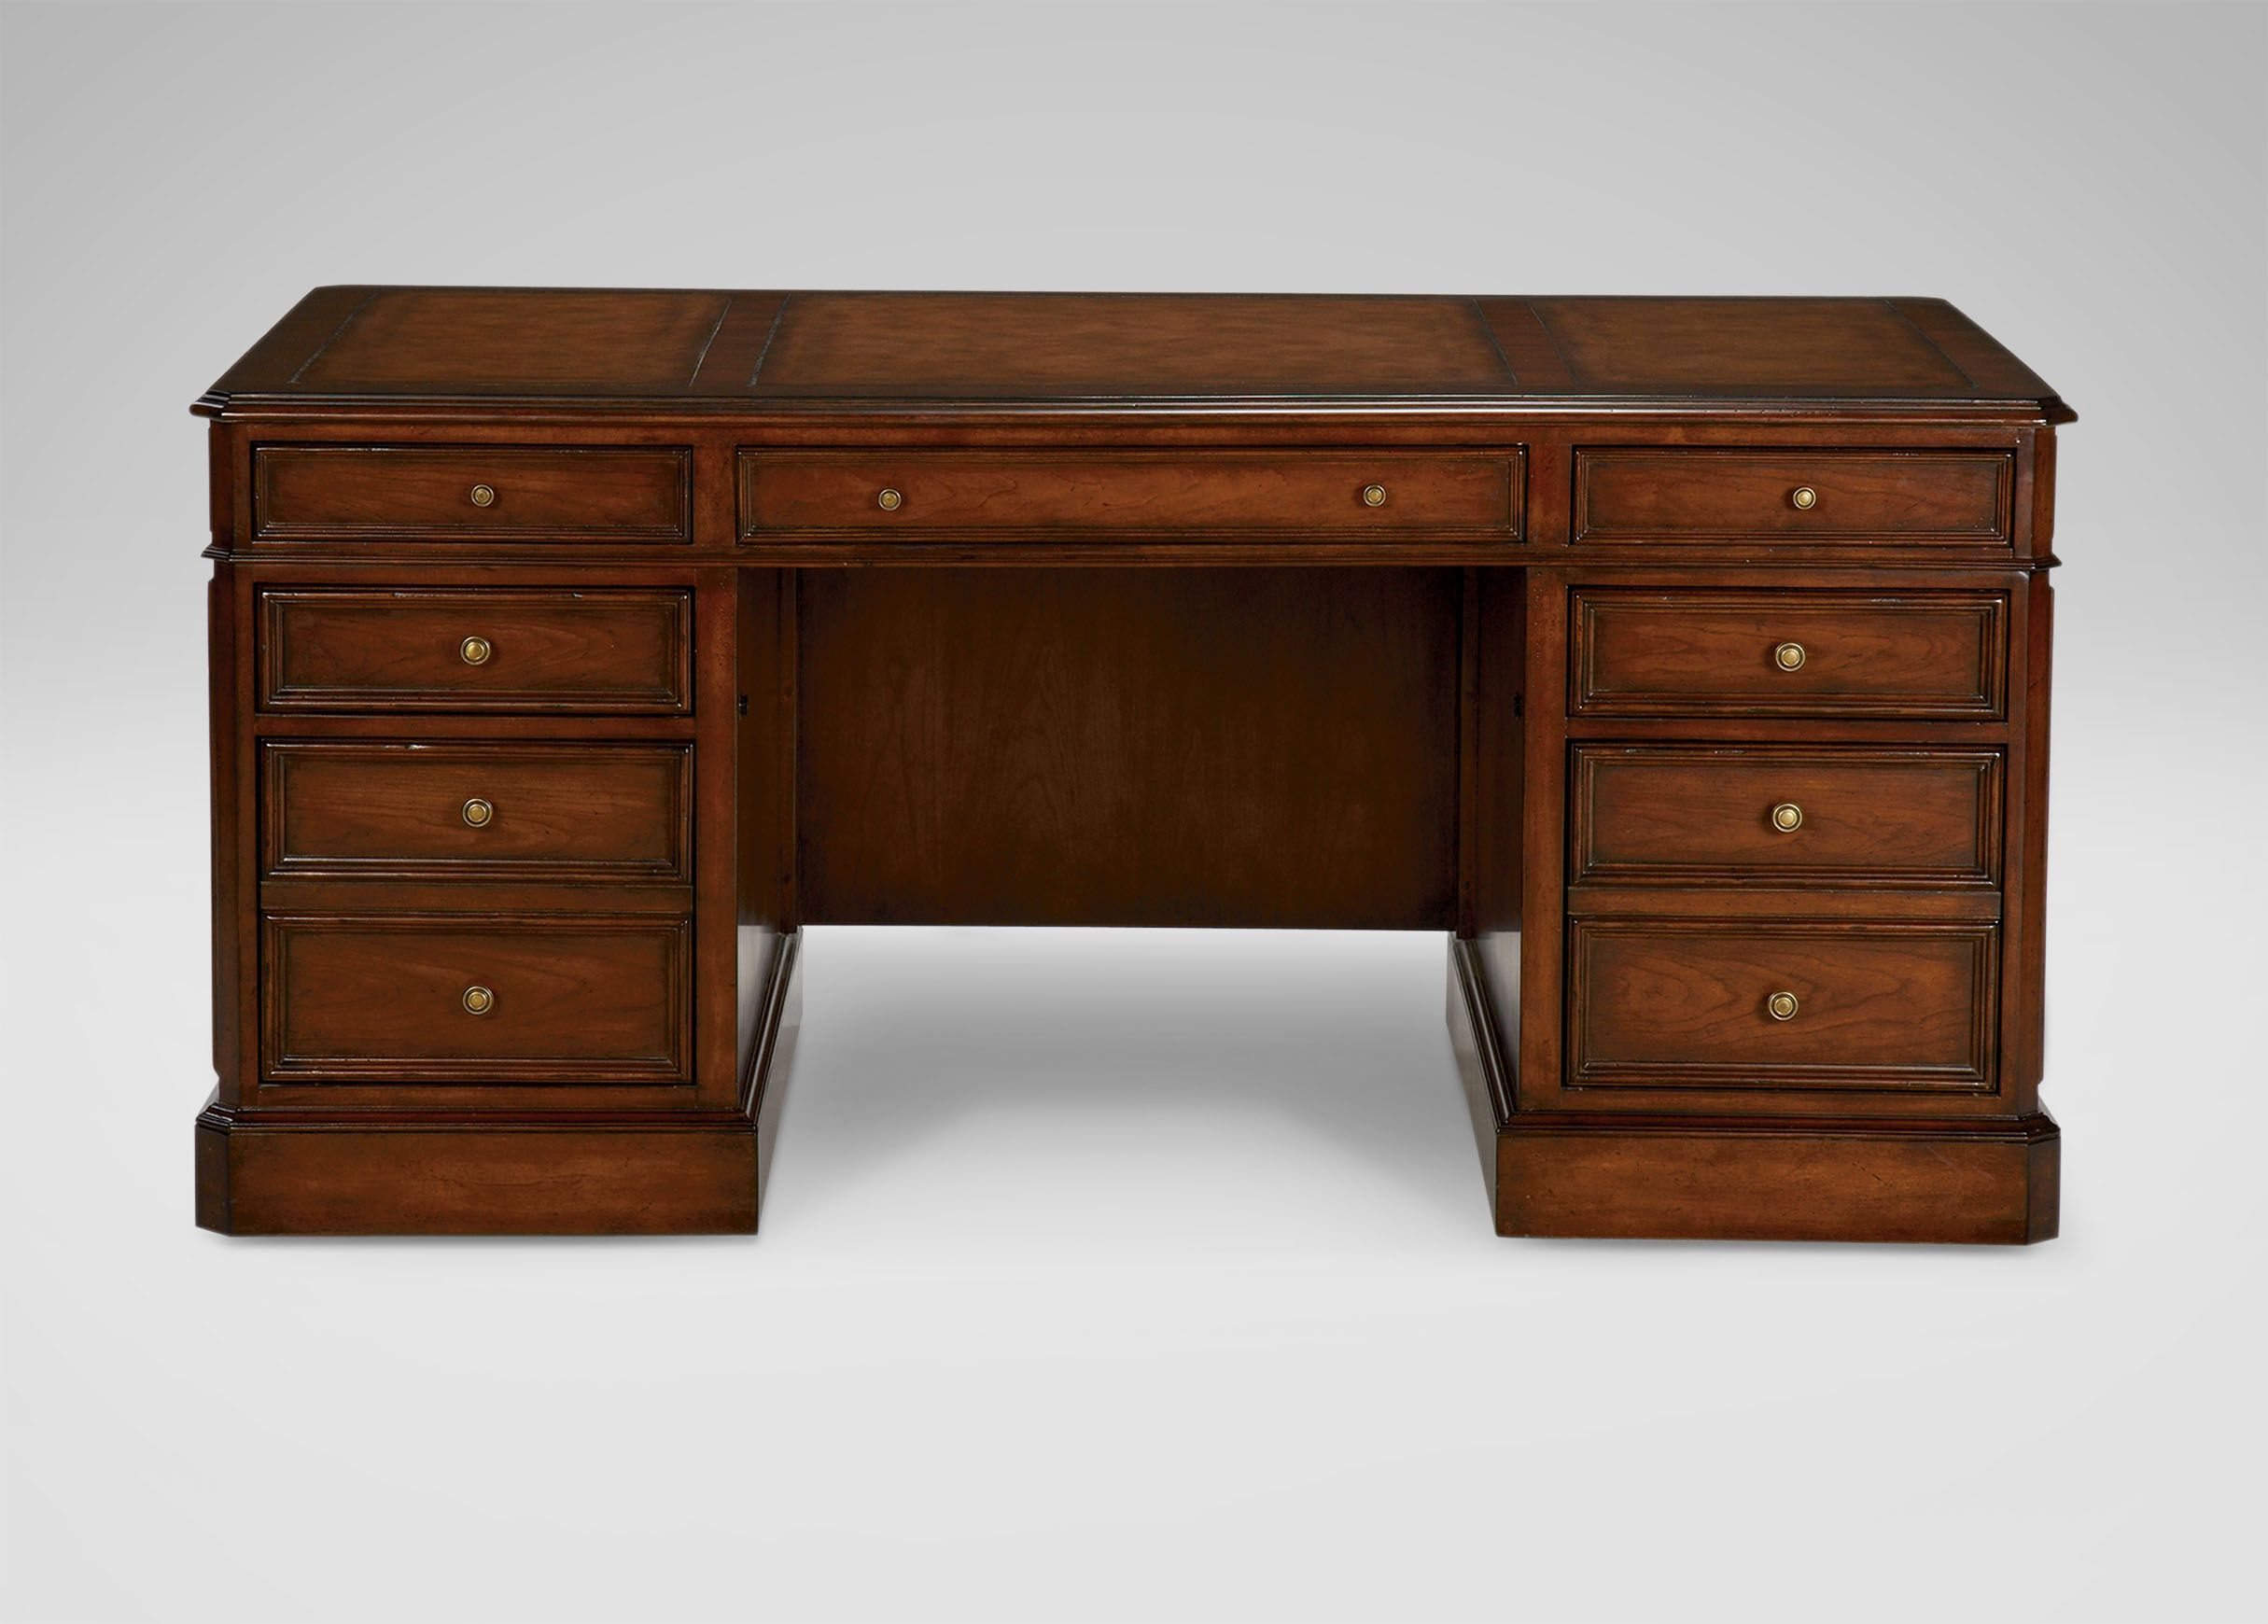 Buckley Leather Top Pedestal Desk Leather Top Desk Pedestal Desk Desk